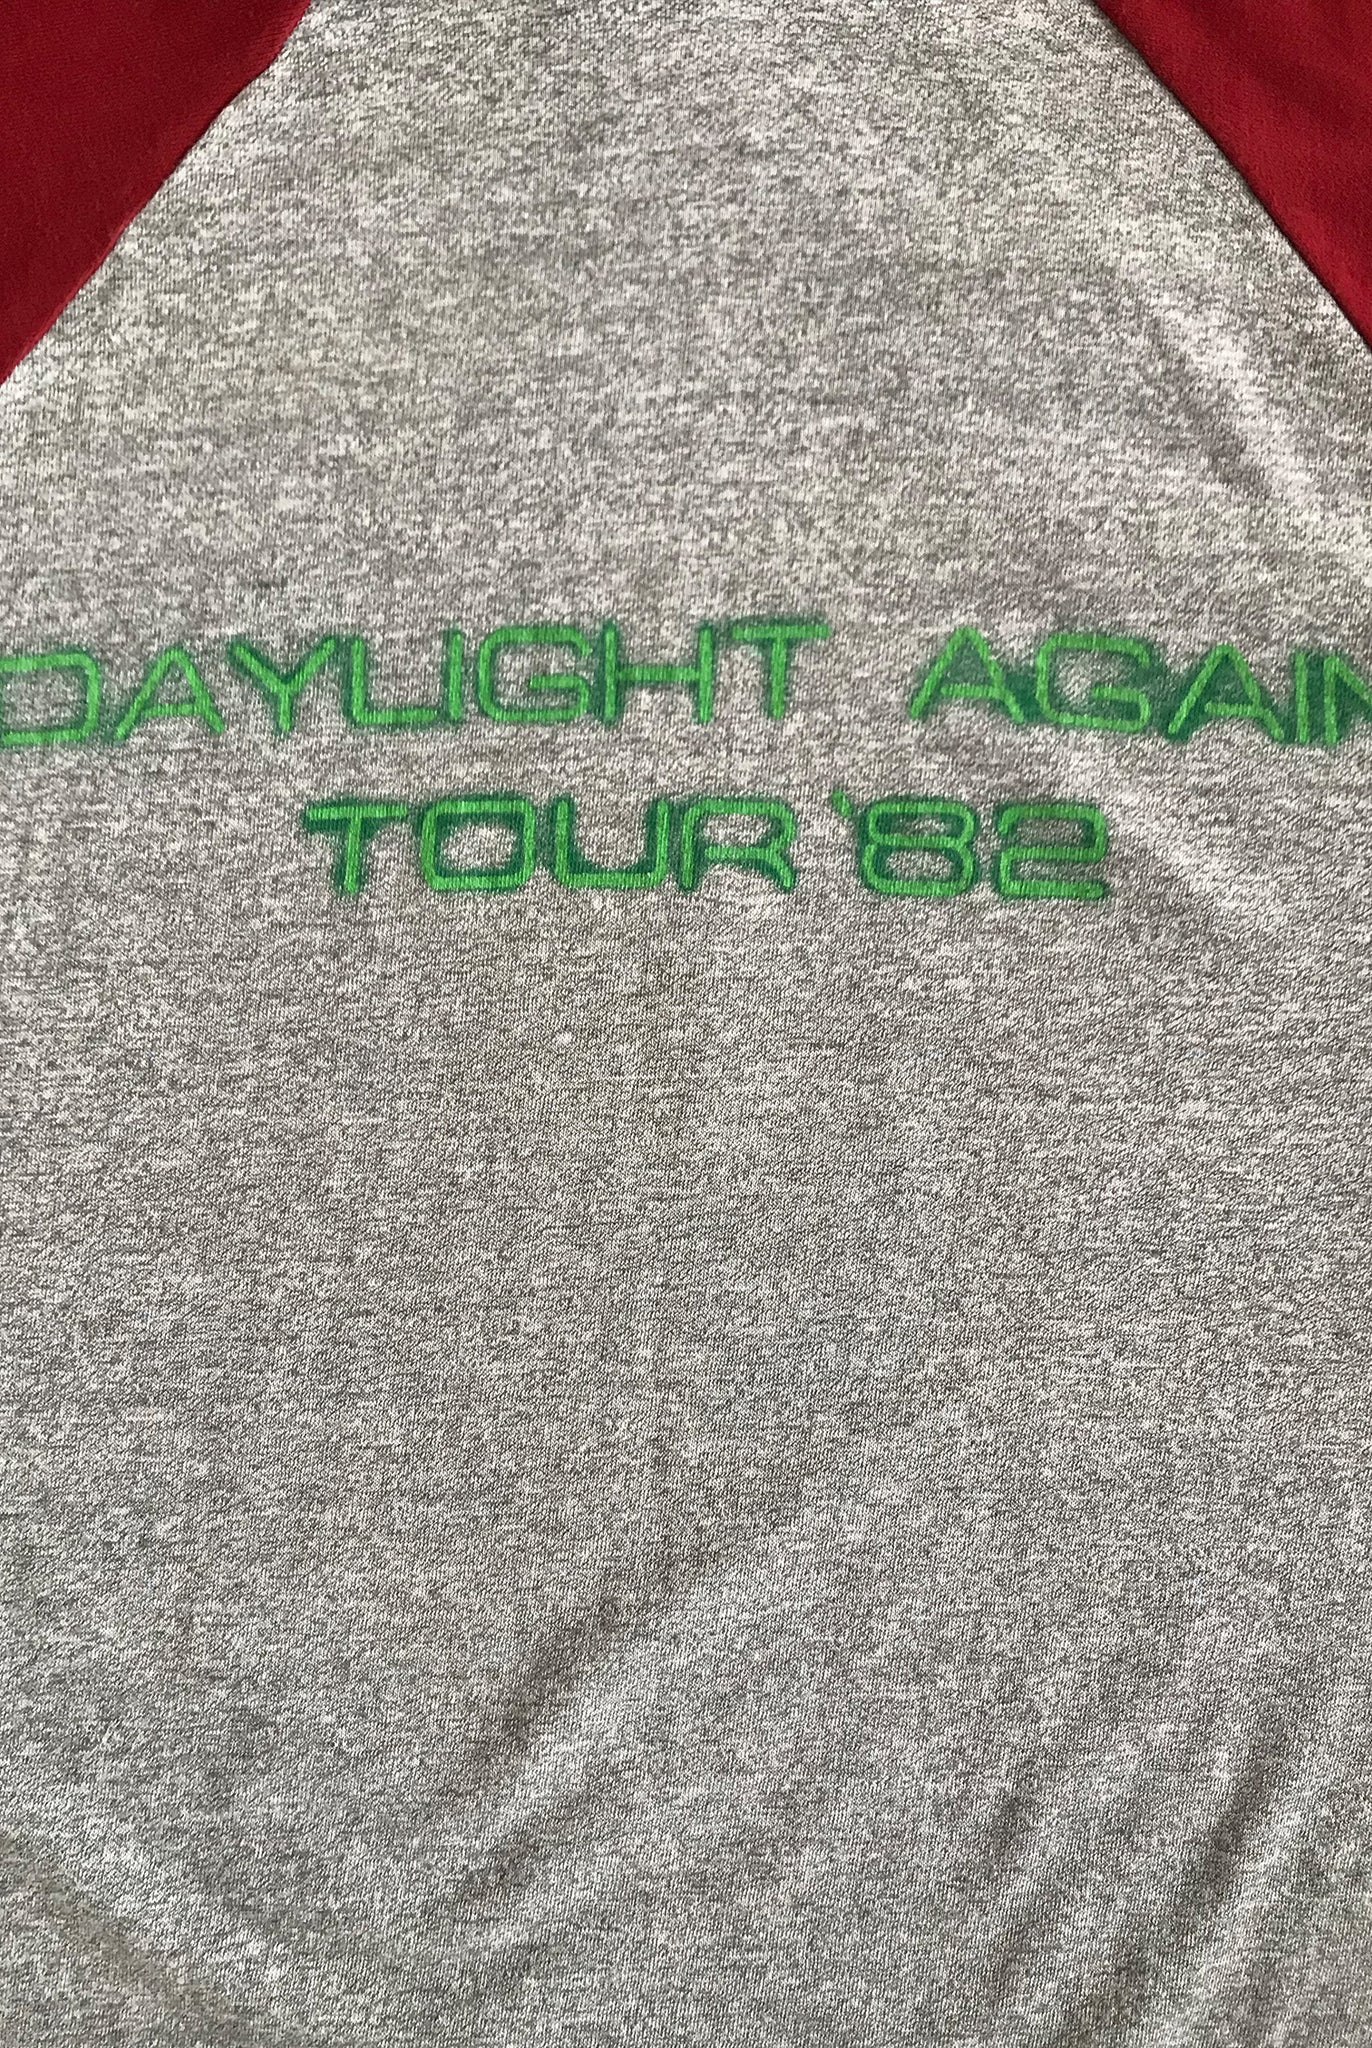 Vintage 1982 crosby stills and nash daylight again tour promotional tshirt